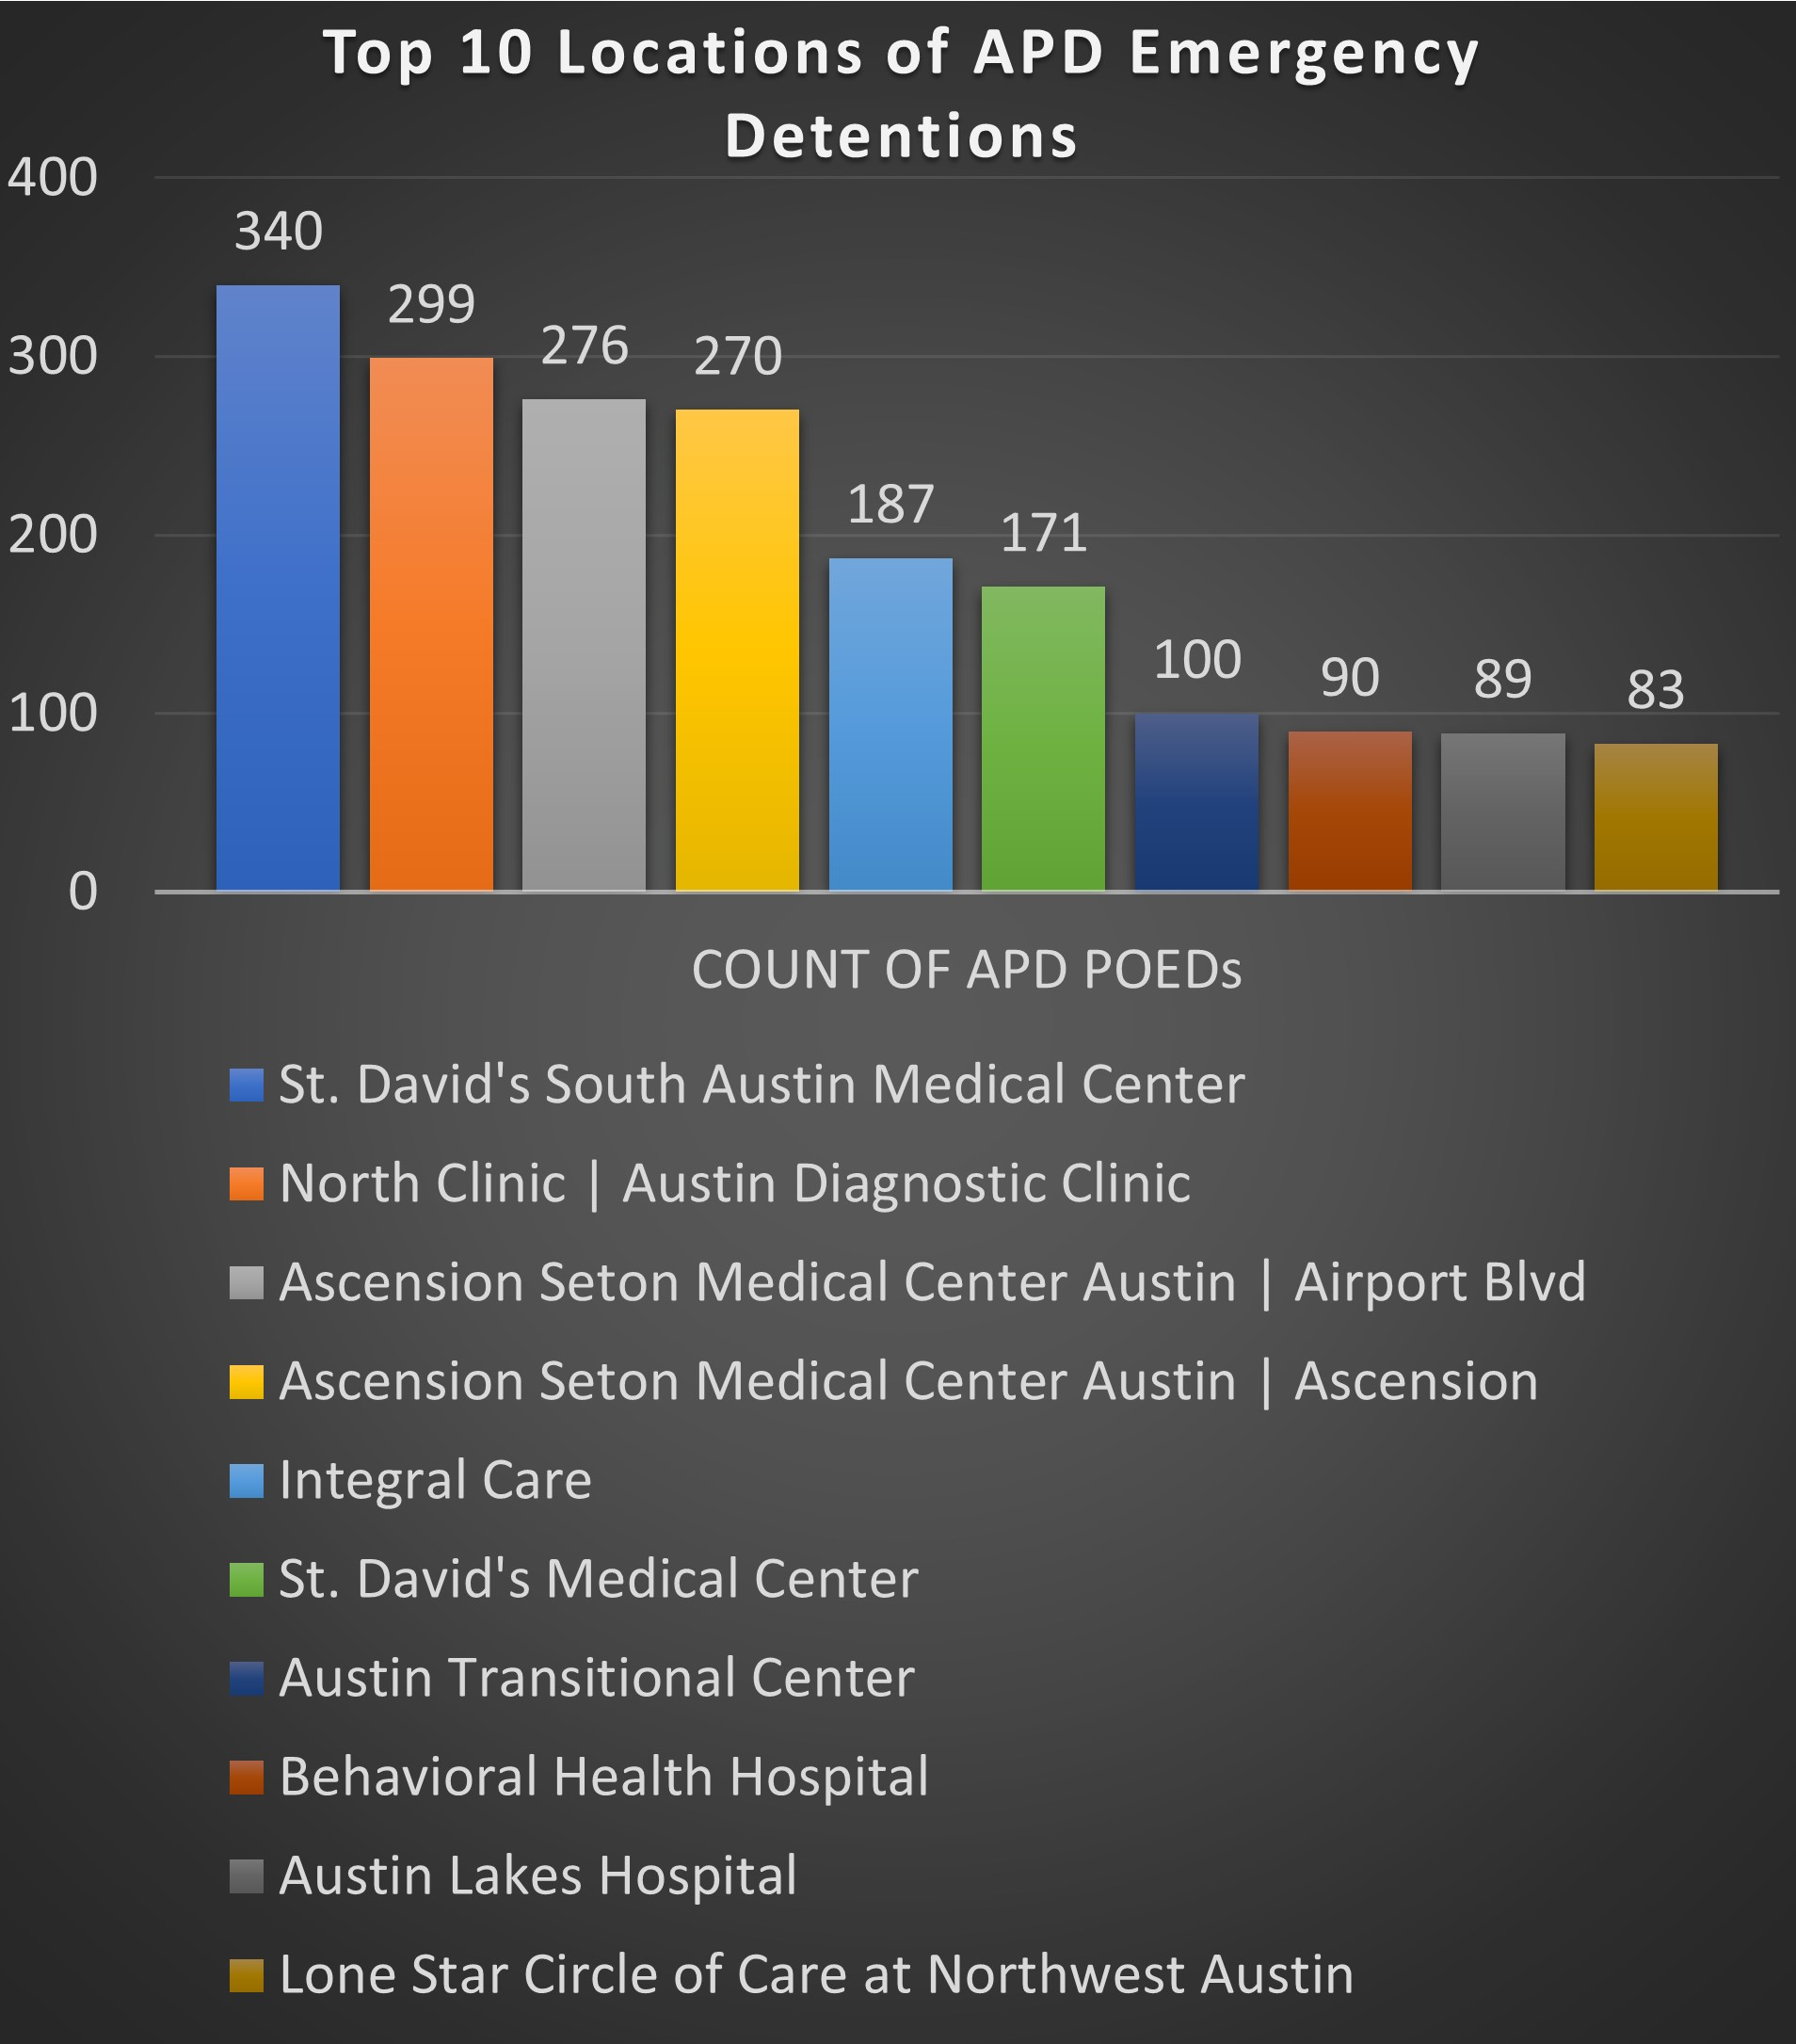 Graph showing the top 10 locations are: St. David's South Austin Medical Center, North Clinic/Austin Diagnostic Clinic, Ascension Seton Medical Center, Integral Care, St. David's Medical Center, Austin Transitional Center, Behavioral Health Hospital, Austin Lakes Hospital, Lone Star Circle of Care at Northwest Austin